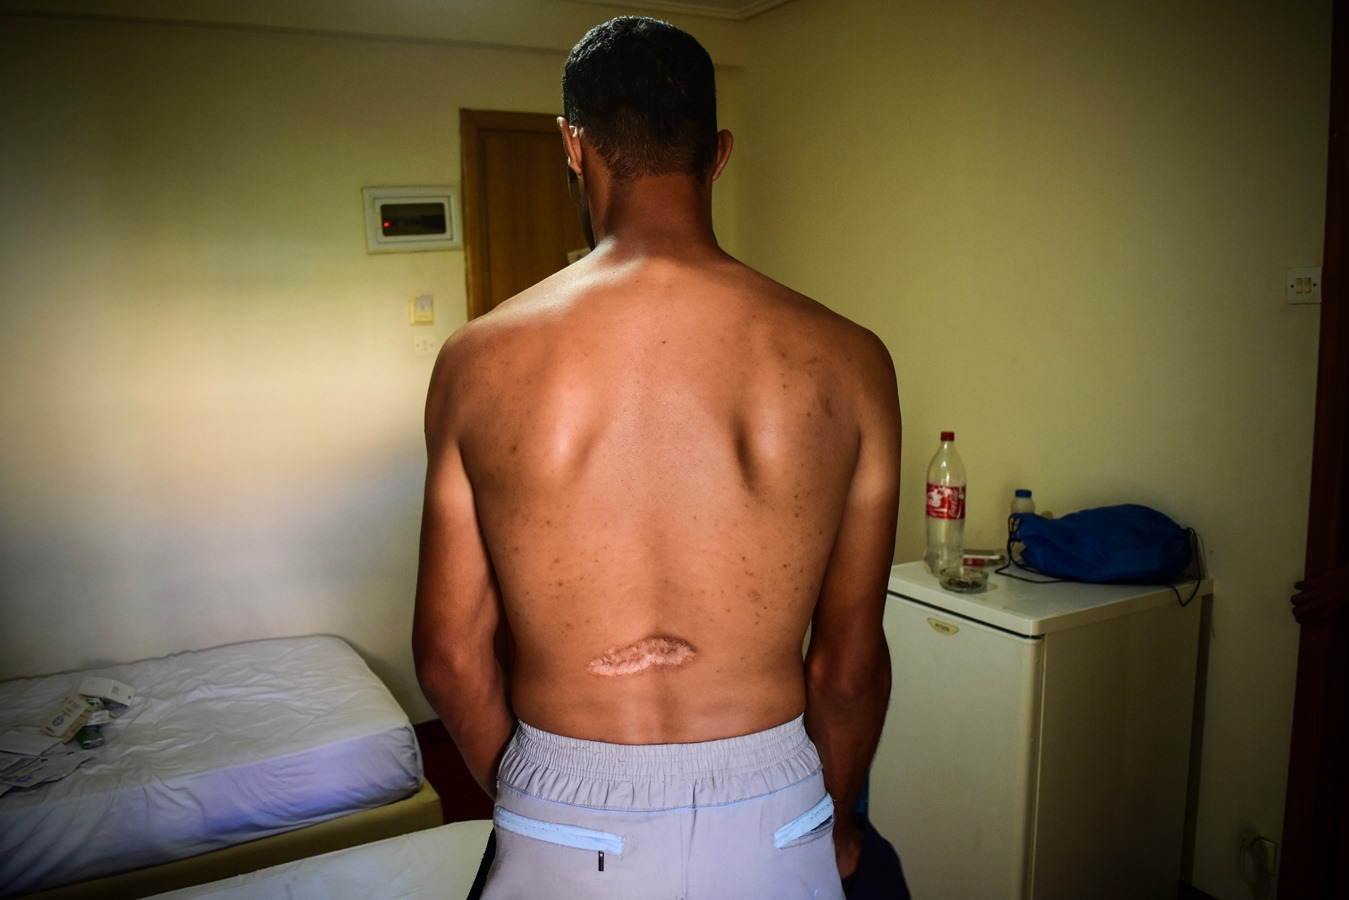 A Syrian asylum-seeker in Greece, who was tortured before the war and has a scar from a bullet that hit him during an attack in Syria.